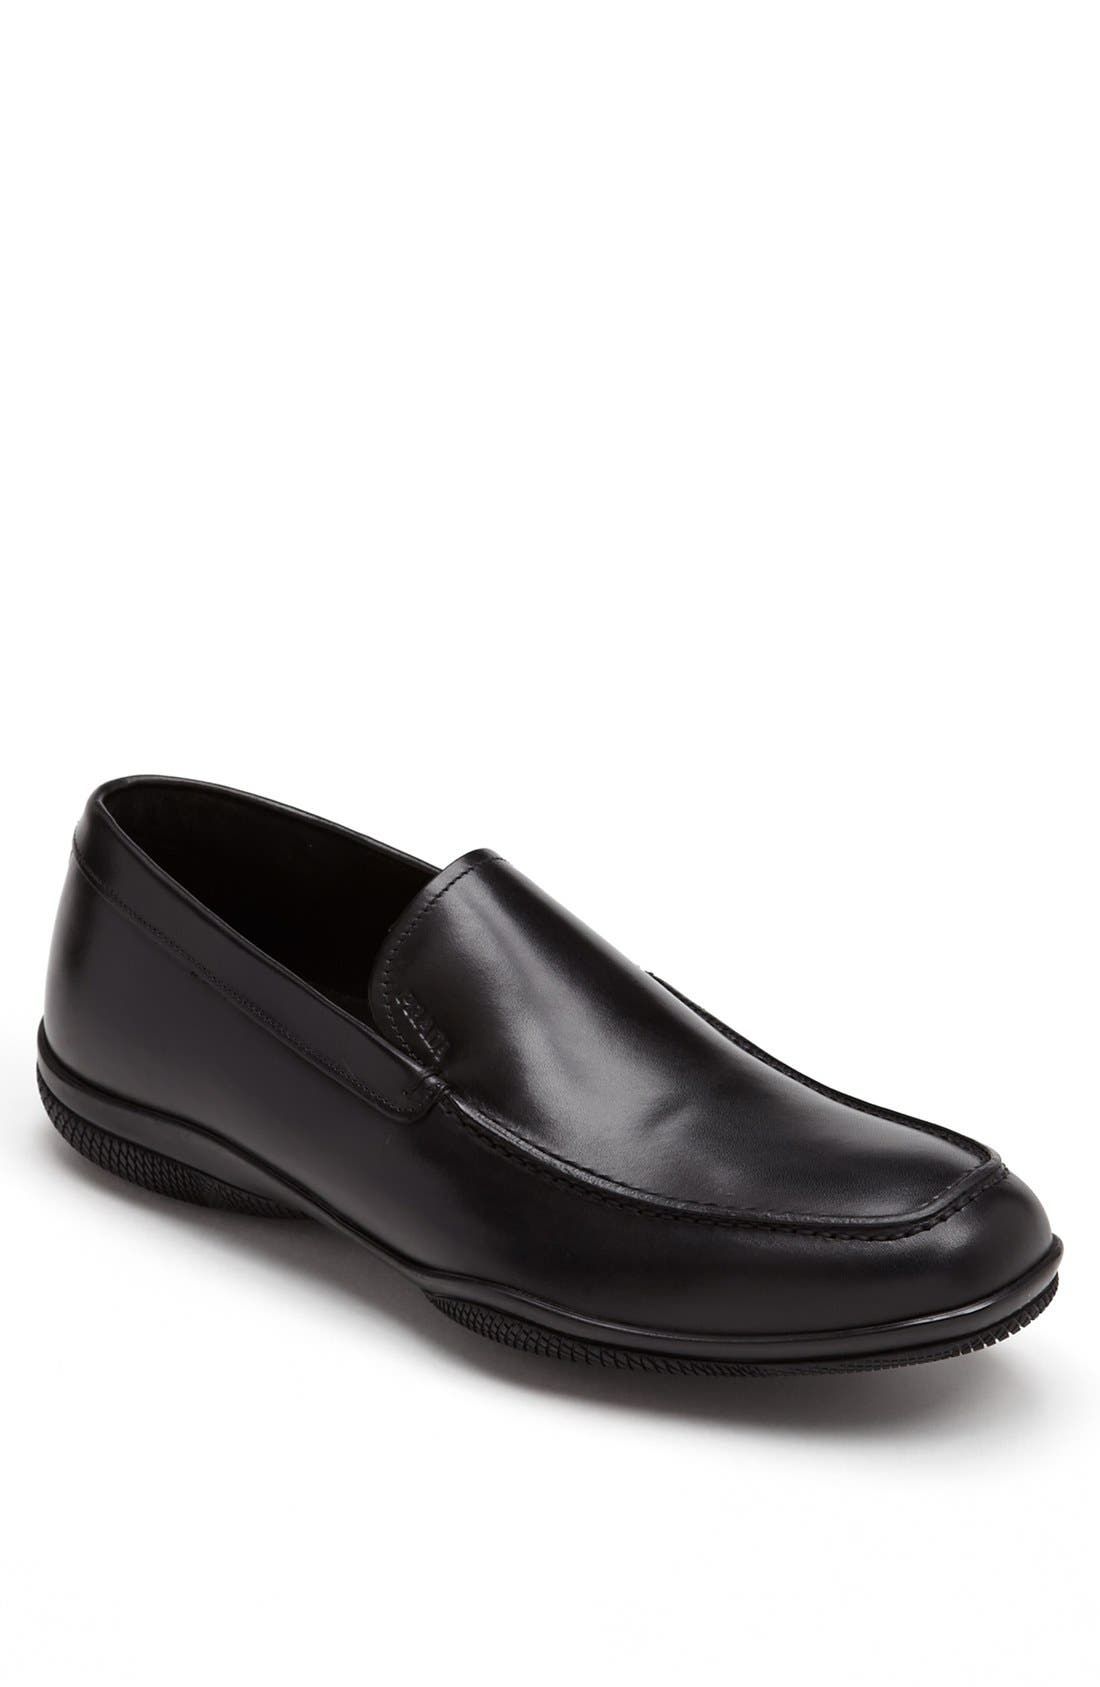 Alternate Image 1 Selected - Prada Leather Slip-On (Men)